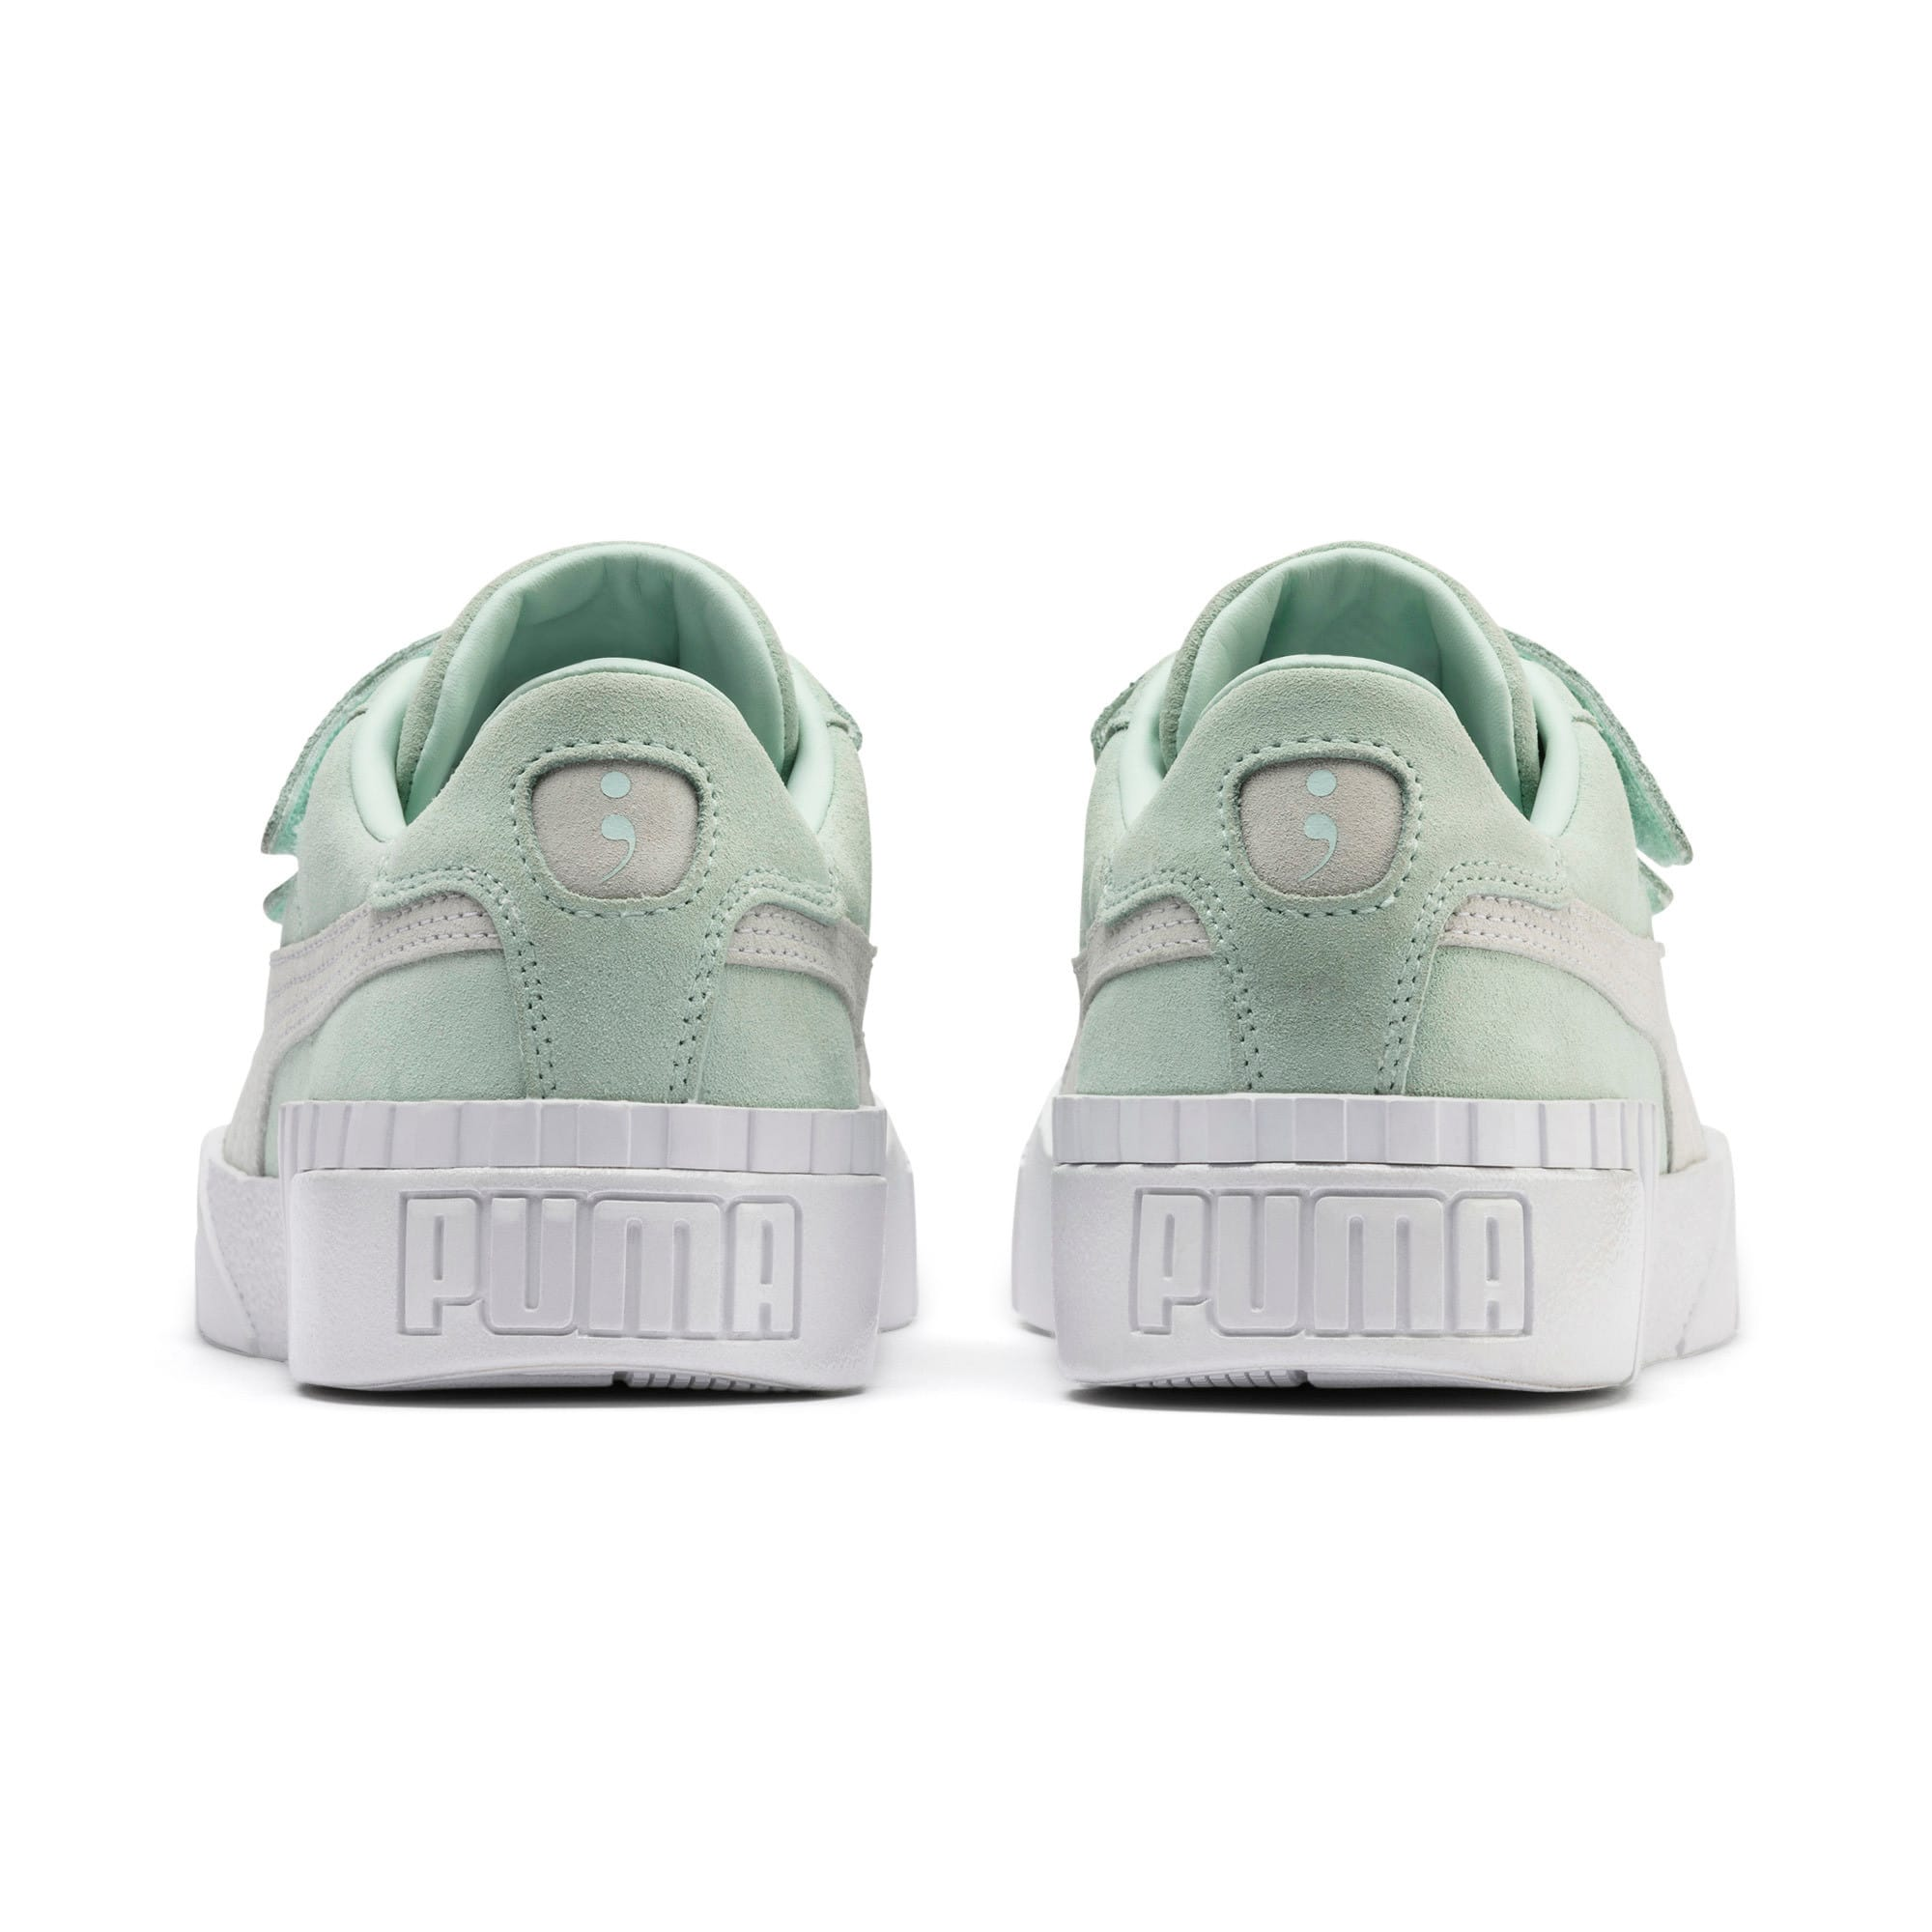 Thumbnail 4 of PUMA x SELENA GOMEZ Cali Women's Trainers, Fair Aqua-Puma White, medium